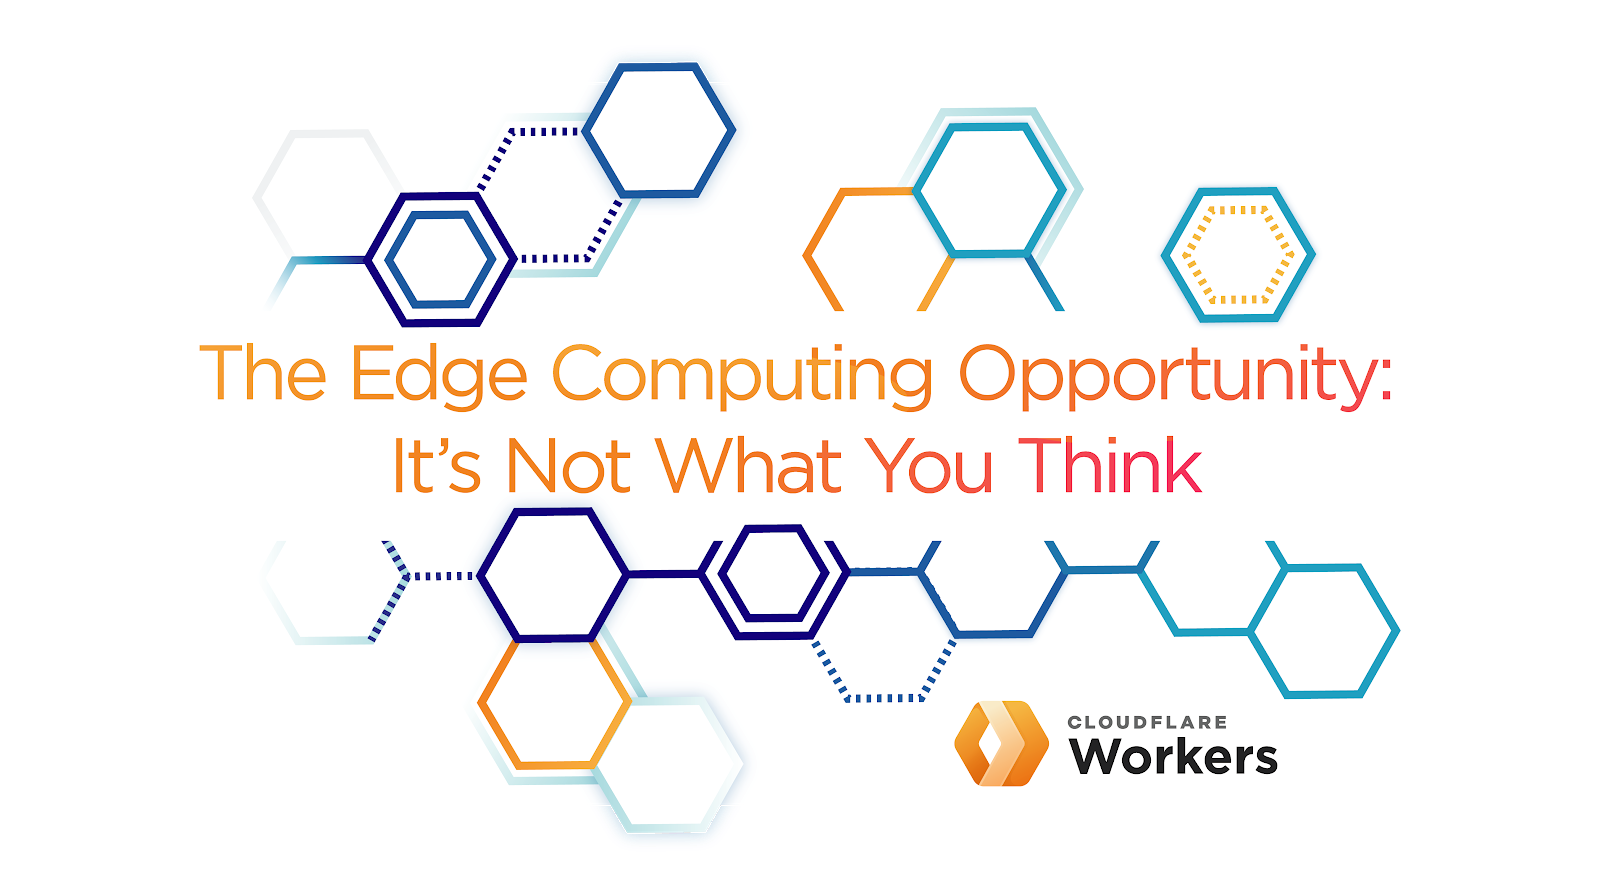 The Edge Computing Opportunity: It's Not What You Think